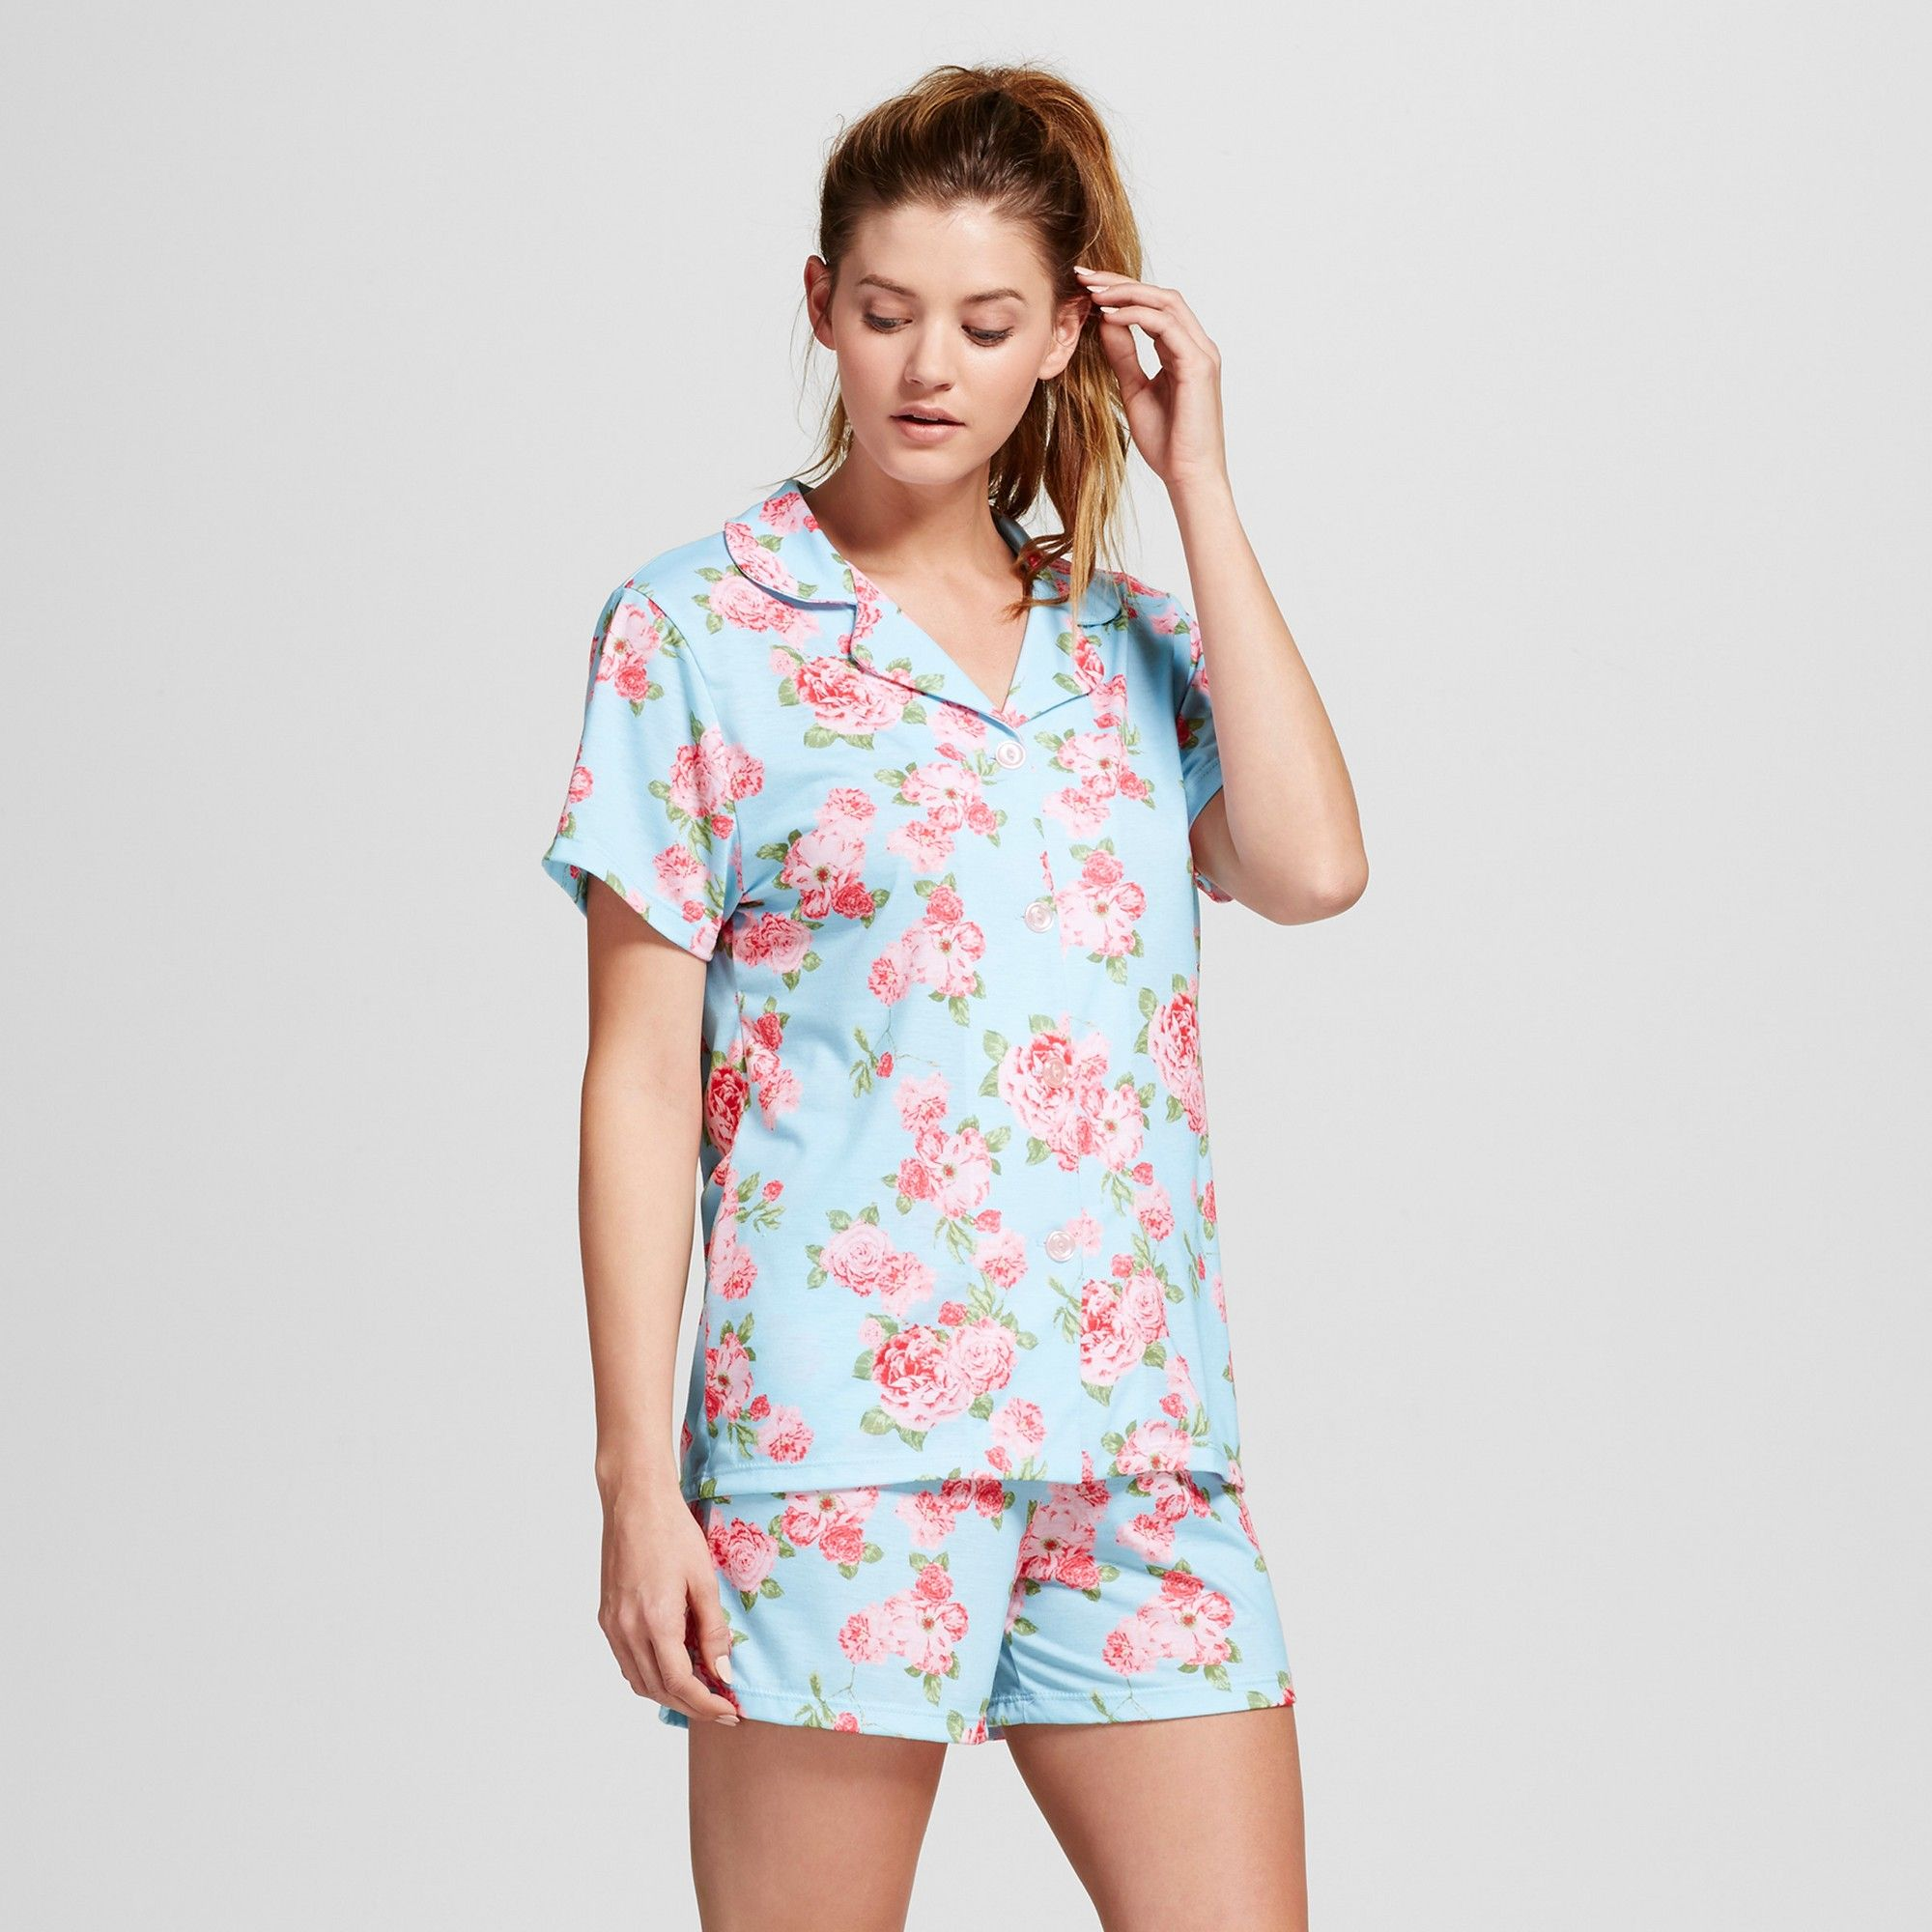 c99204bd745 Bride & Beauties by Bedhead Pajamas Women's Notch Collar Classic Cabbage  Rose Shorty Pajama Set - Blue M